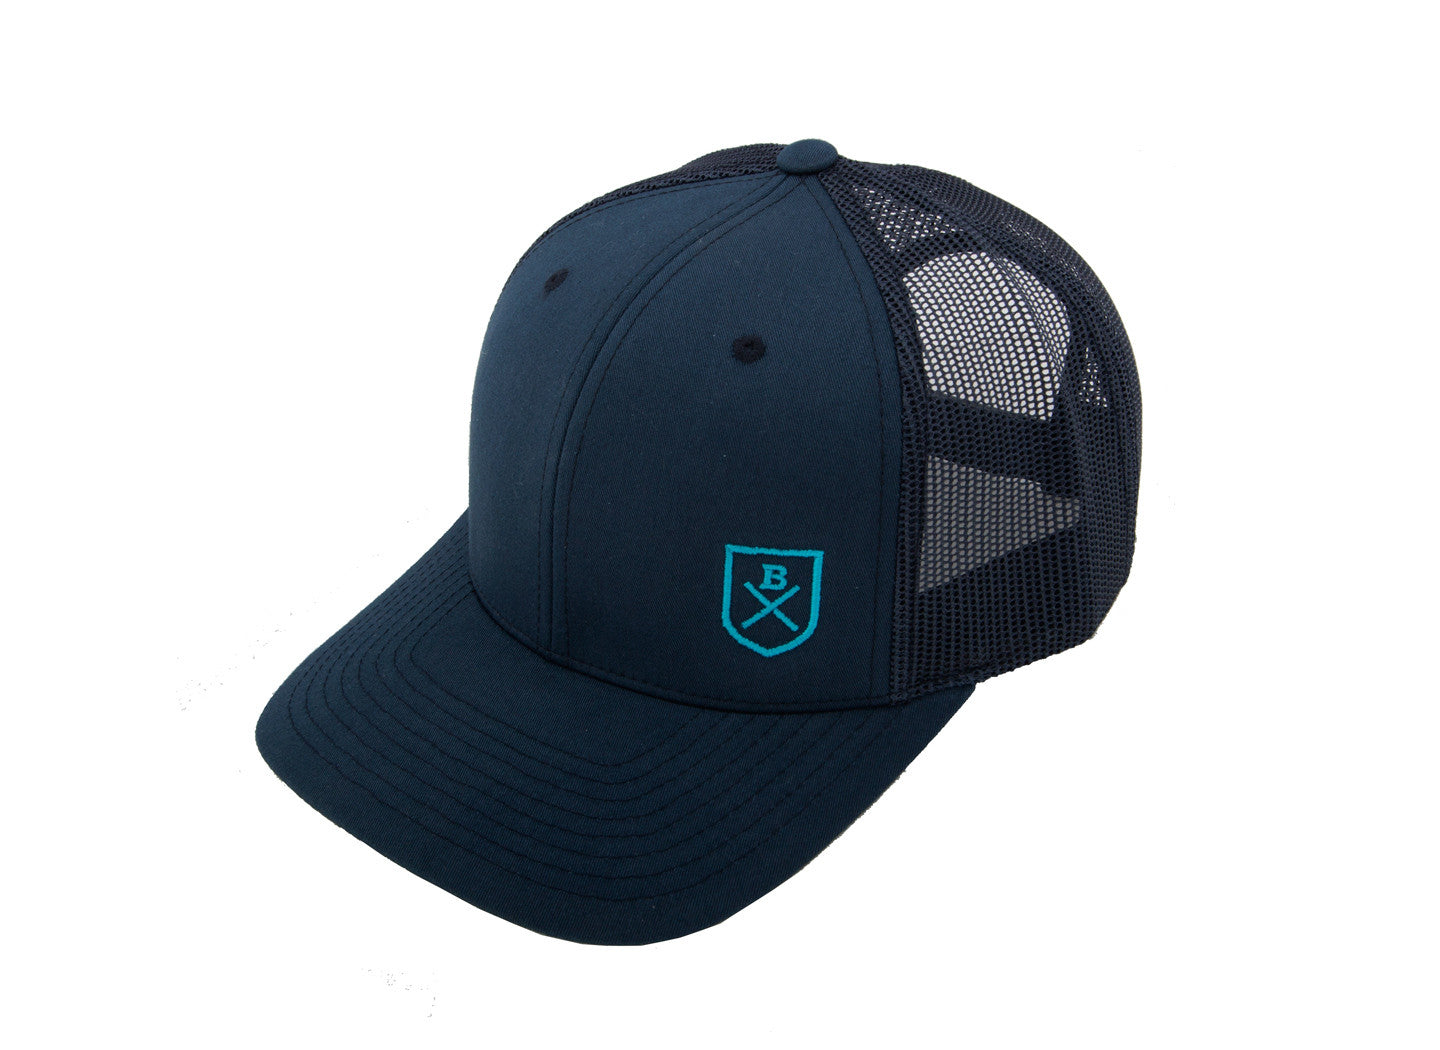 Bluesmiths Classic Trucker Cap - Blue with Shield Logo